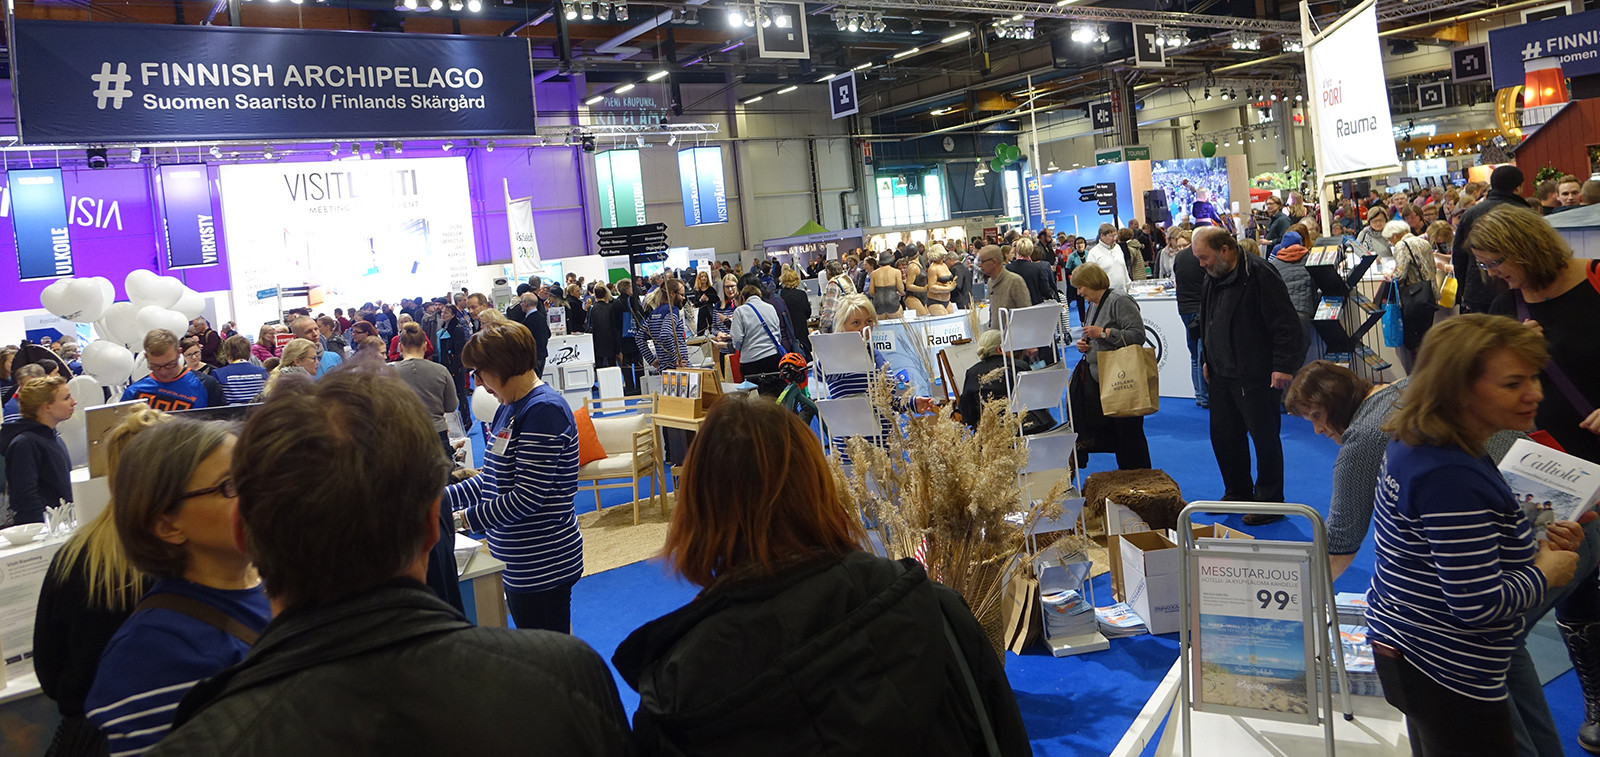 Fair visitors and exhibitors at the Matka Nordic Travel Fair's Finnish Archipelago stand in 2017. The Finnish Archipelago stand is a large, joint stand of over ten cities and communities located in the Southwestern Finland.